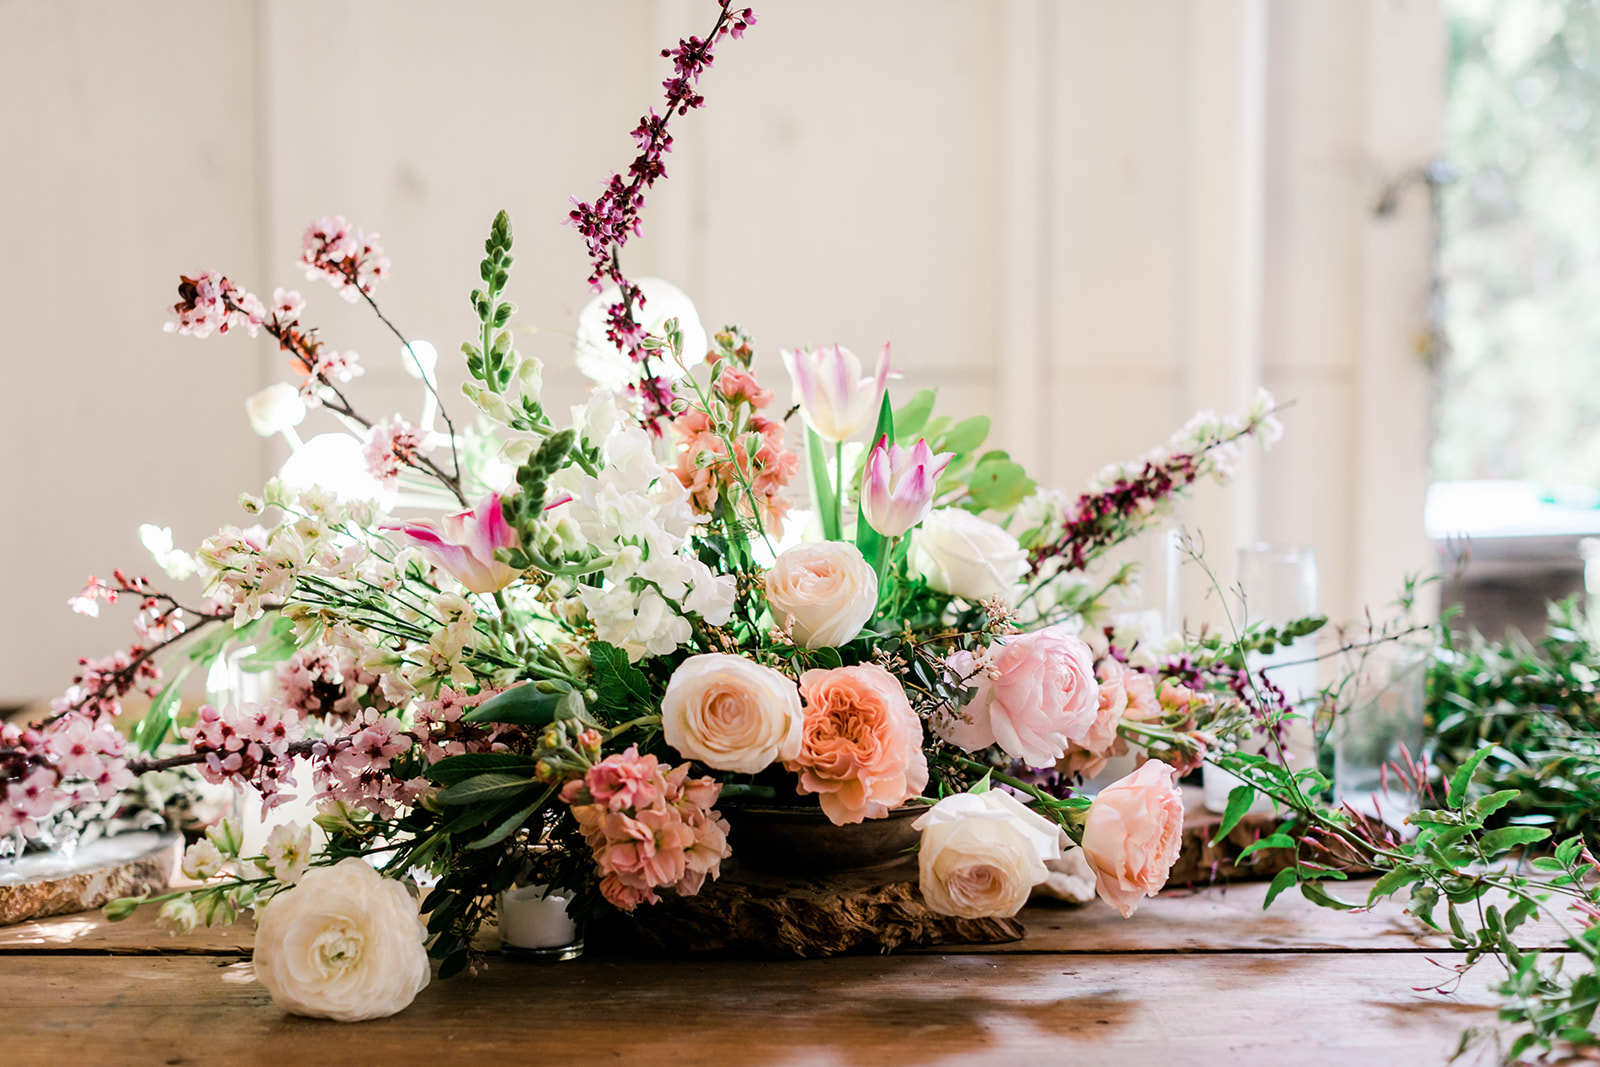 Forage Floral Design